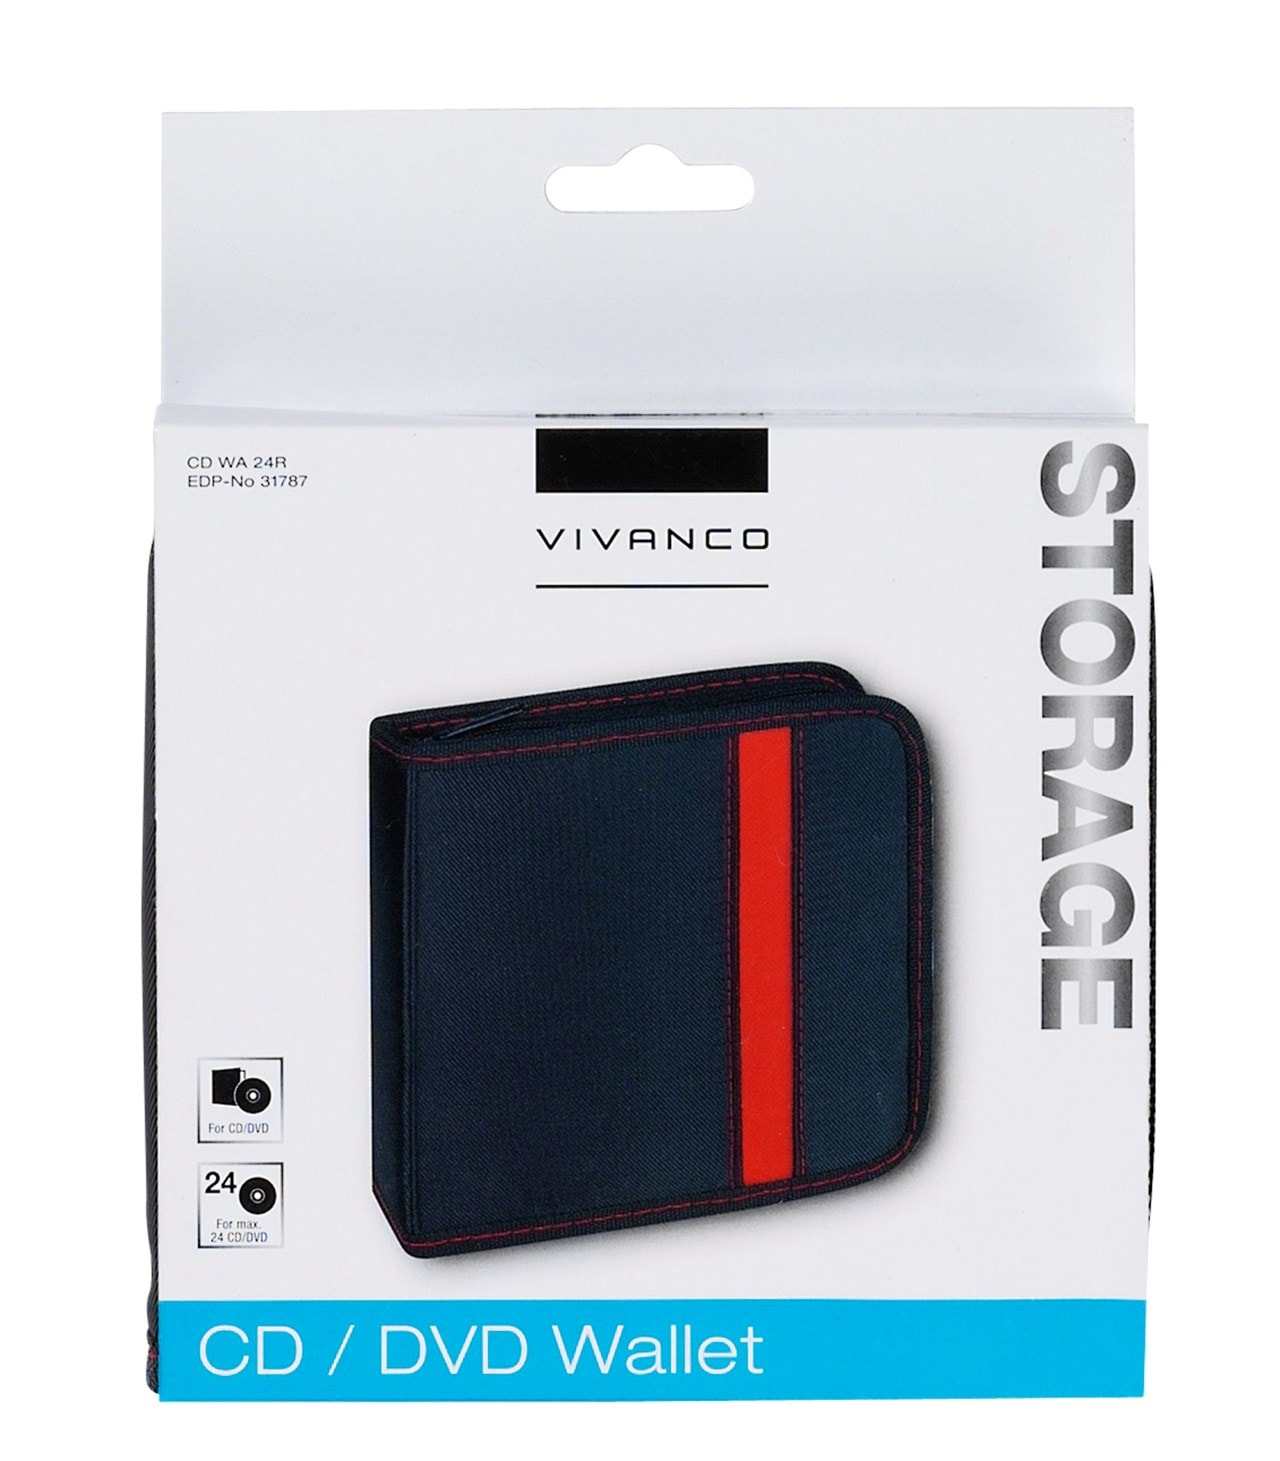 Vivanco 24 CD Wallet Black/Red - 2